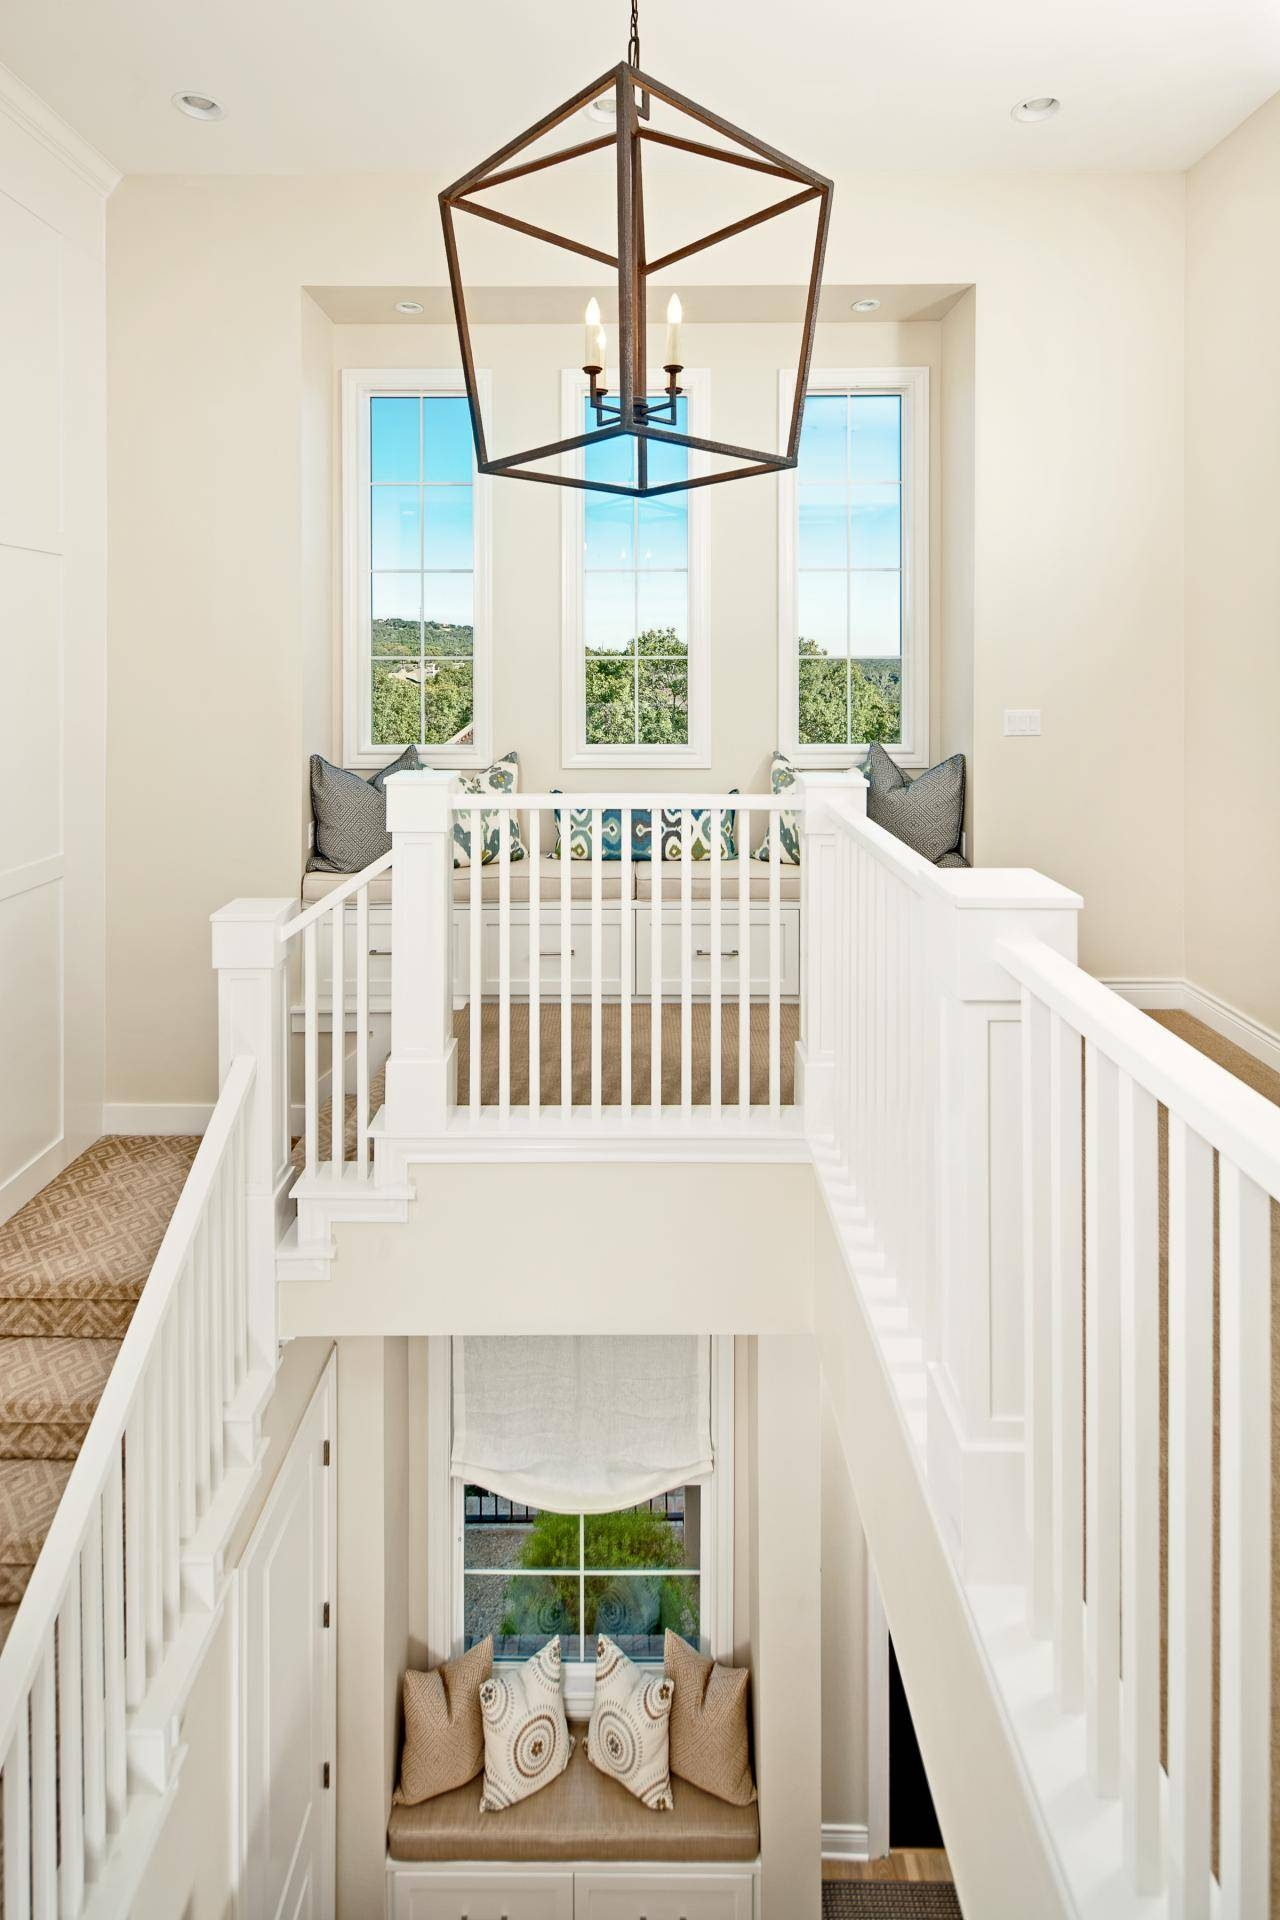 White Stairwell With A Classic Modern Pendant Light And Window with regard to Pendant Lights Stairwell (Image 15 of 15)